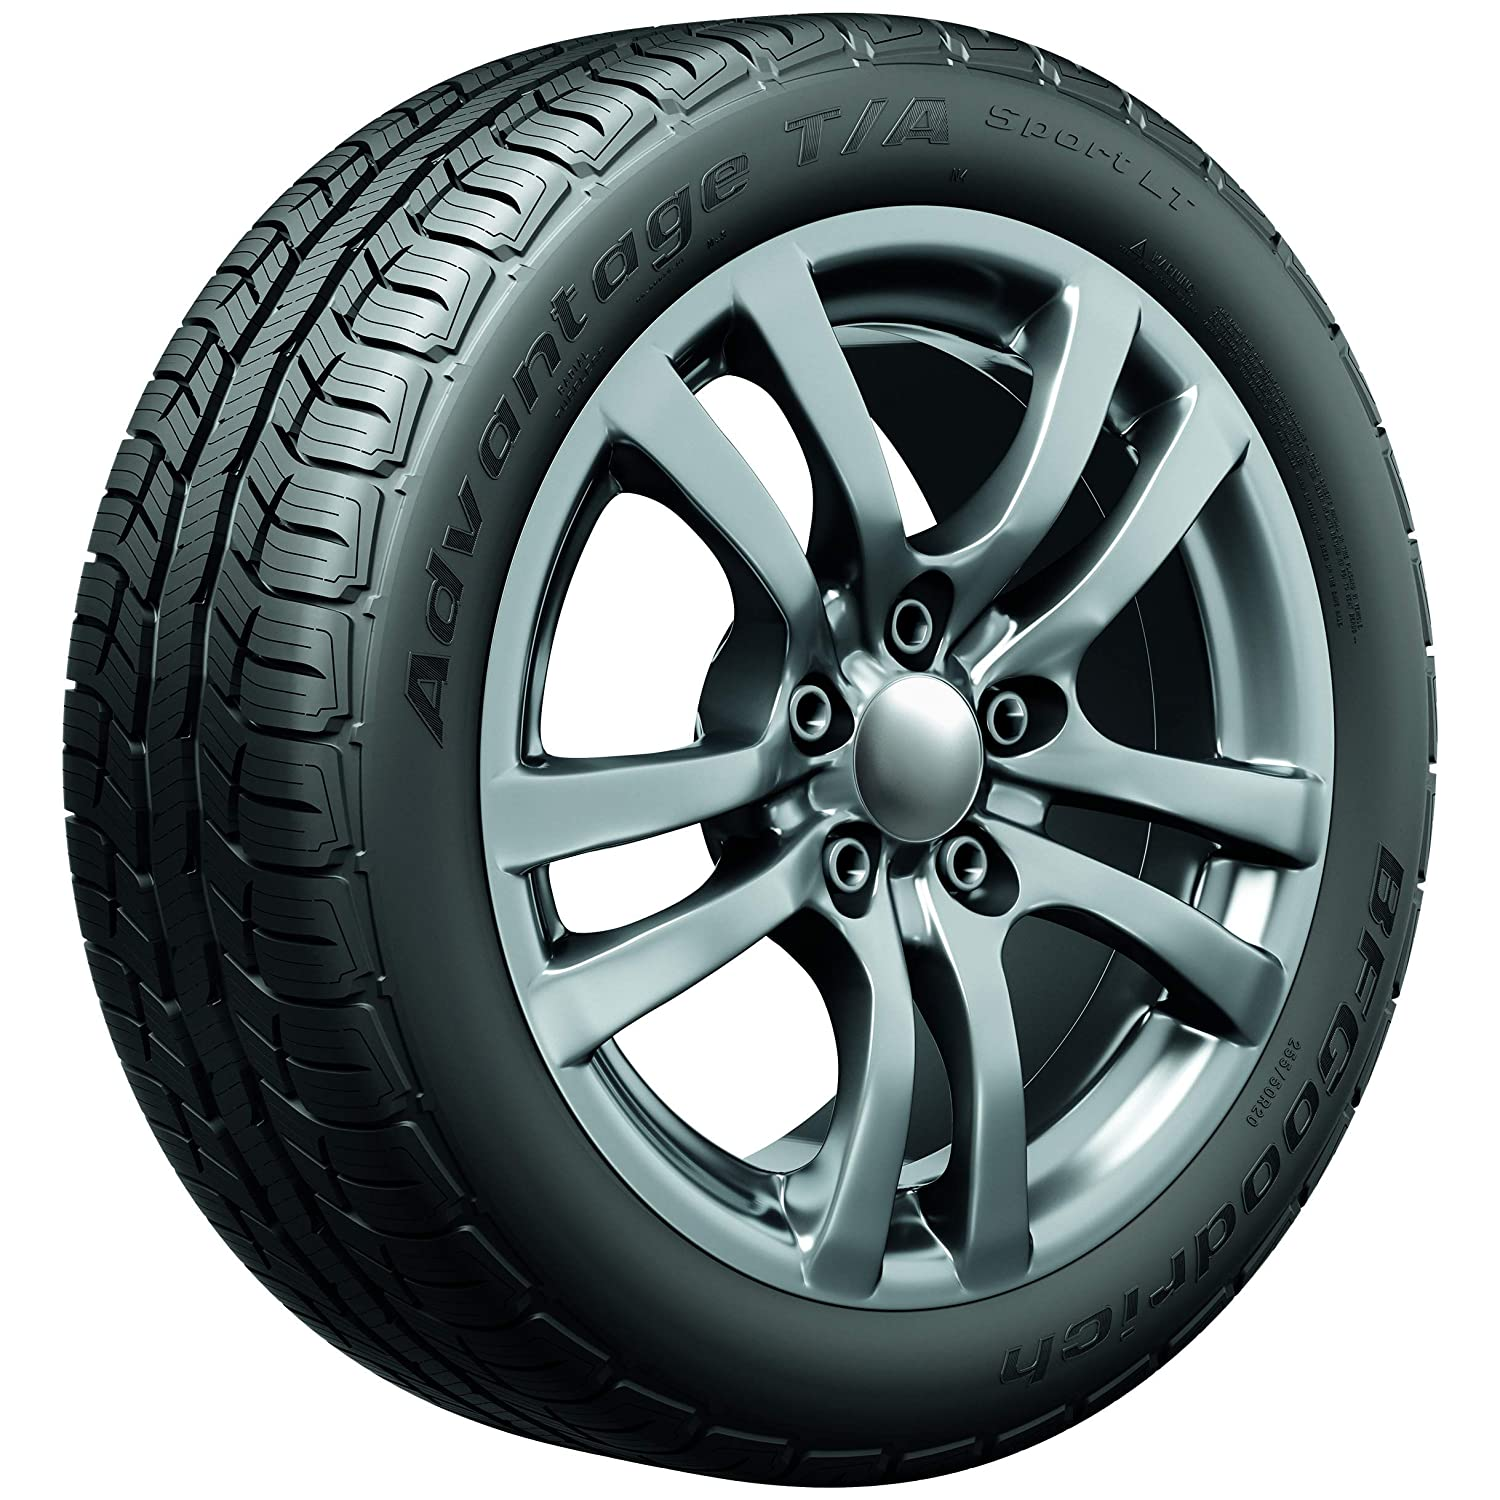 bfgoodrich advantage sport lt reviews